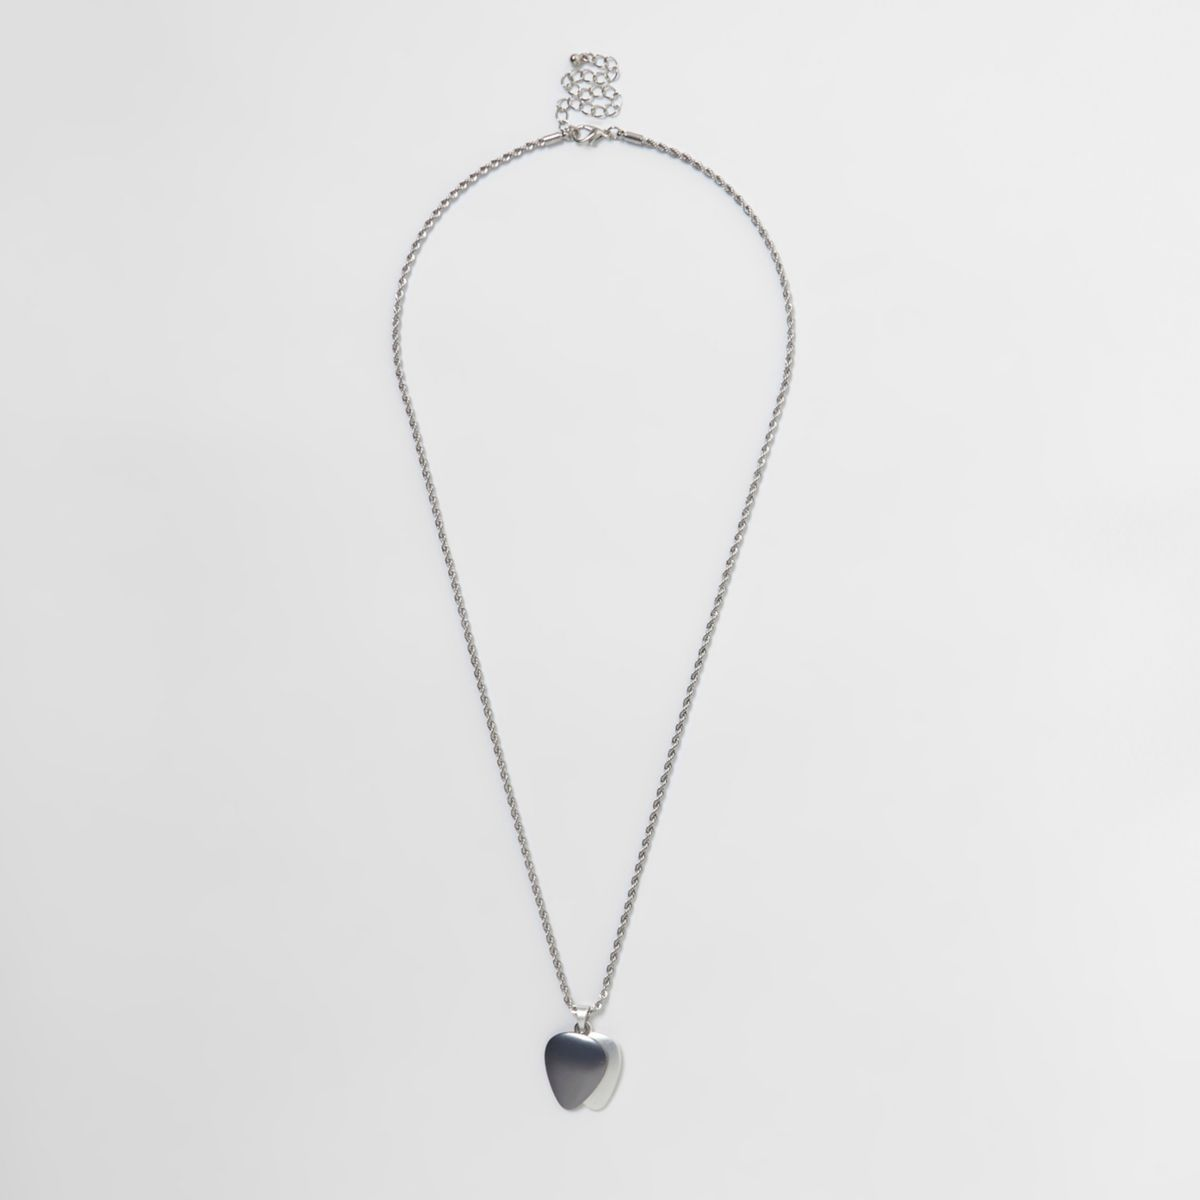 Silver tone double charm necklace